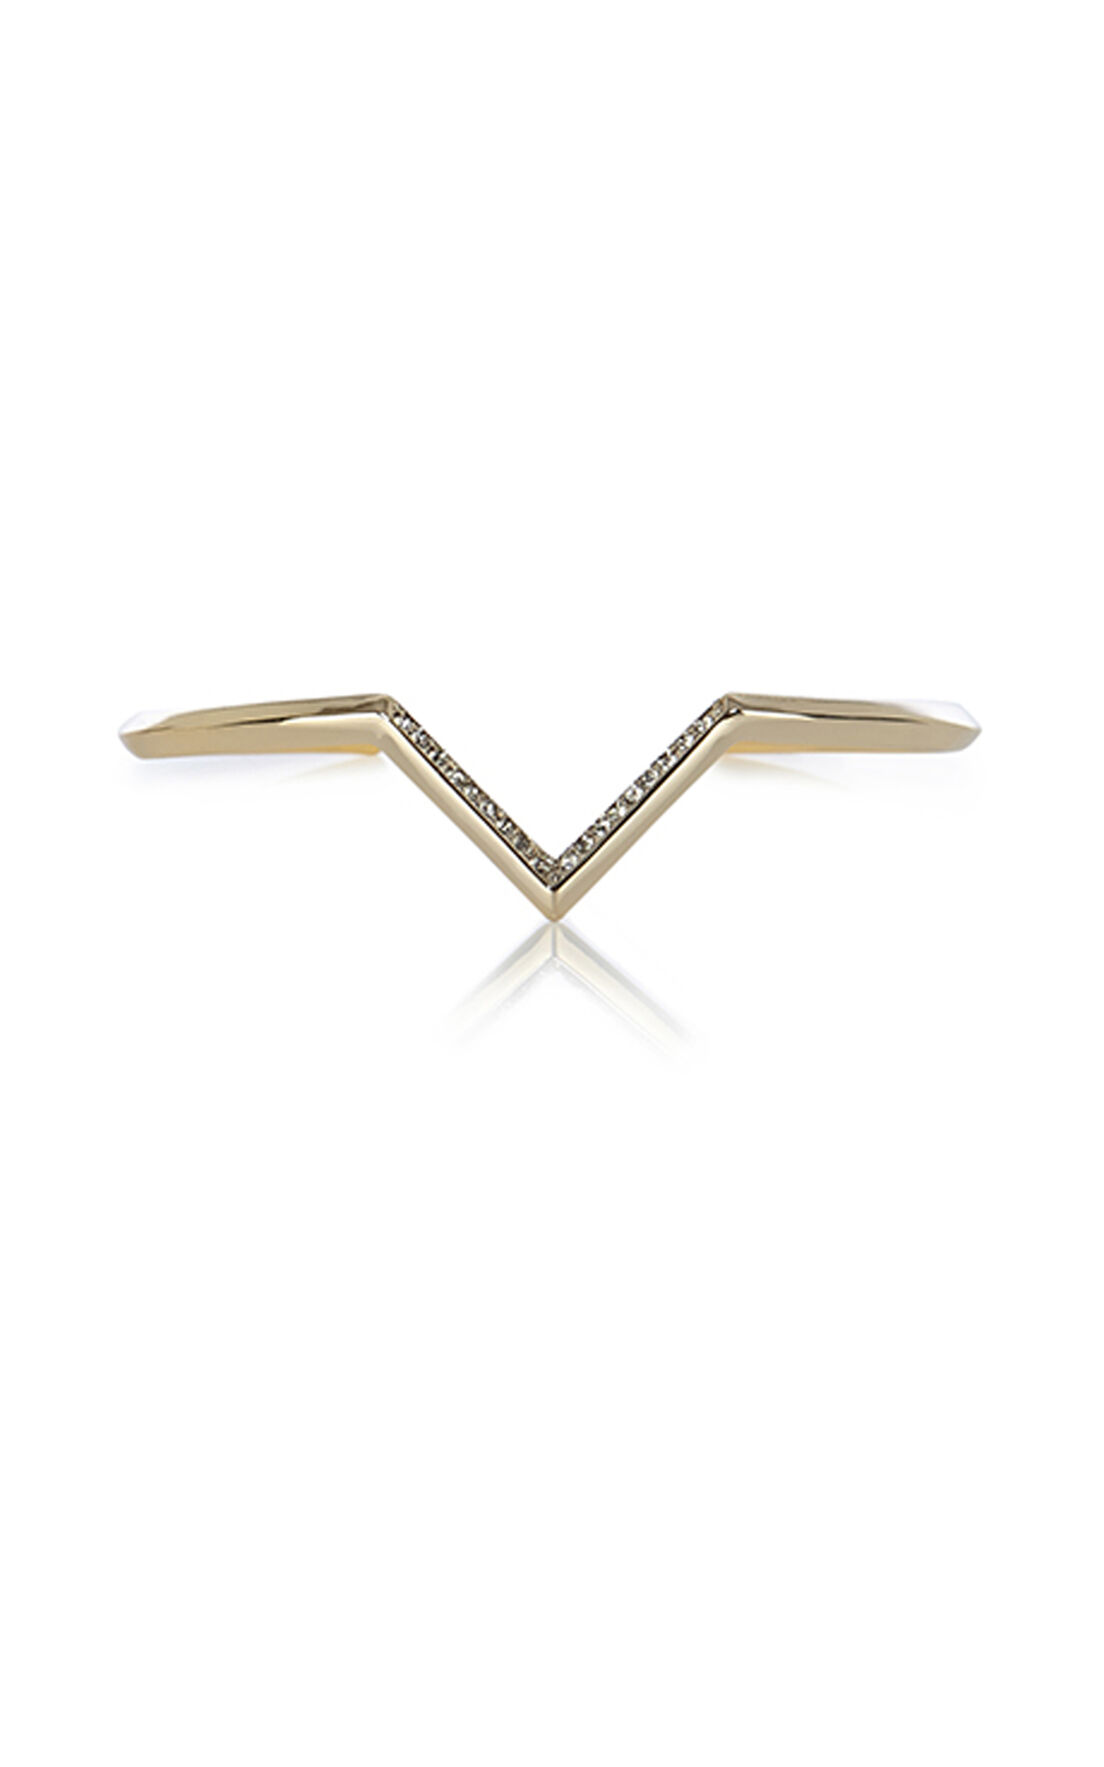 Karen Millen, The Angle Crystal Skinny Cuff Gold Col 0